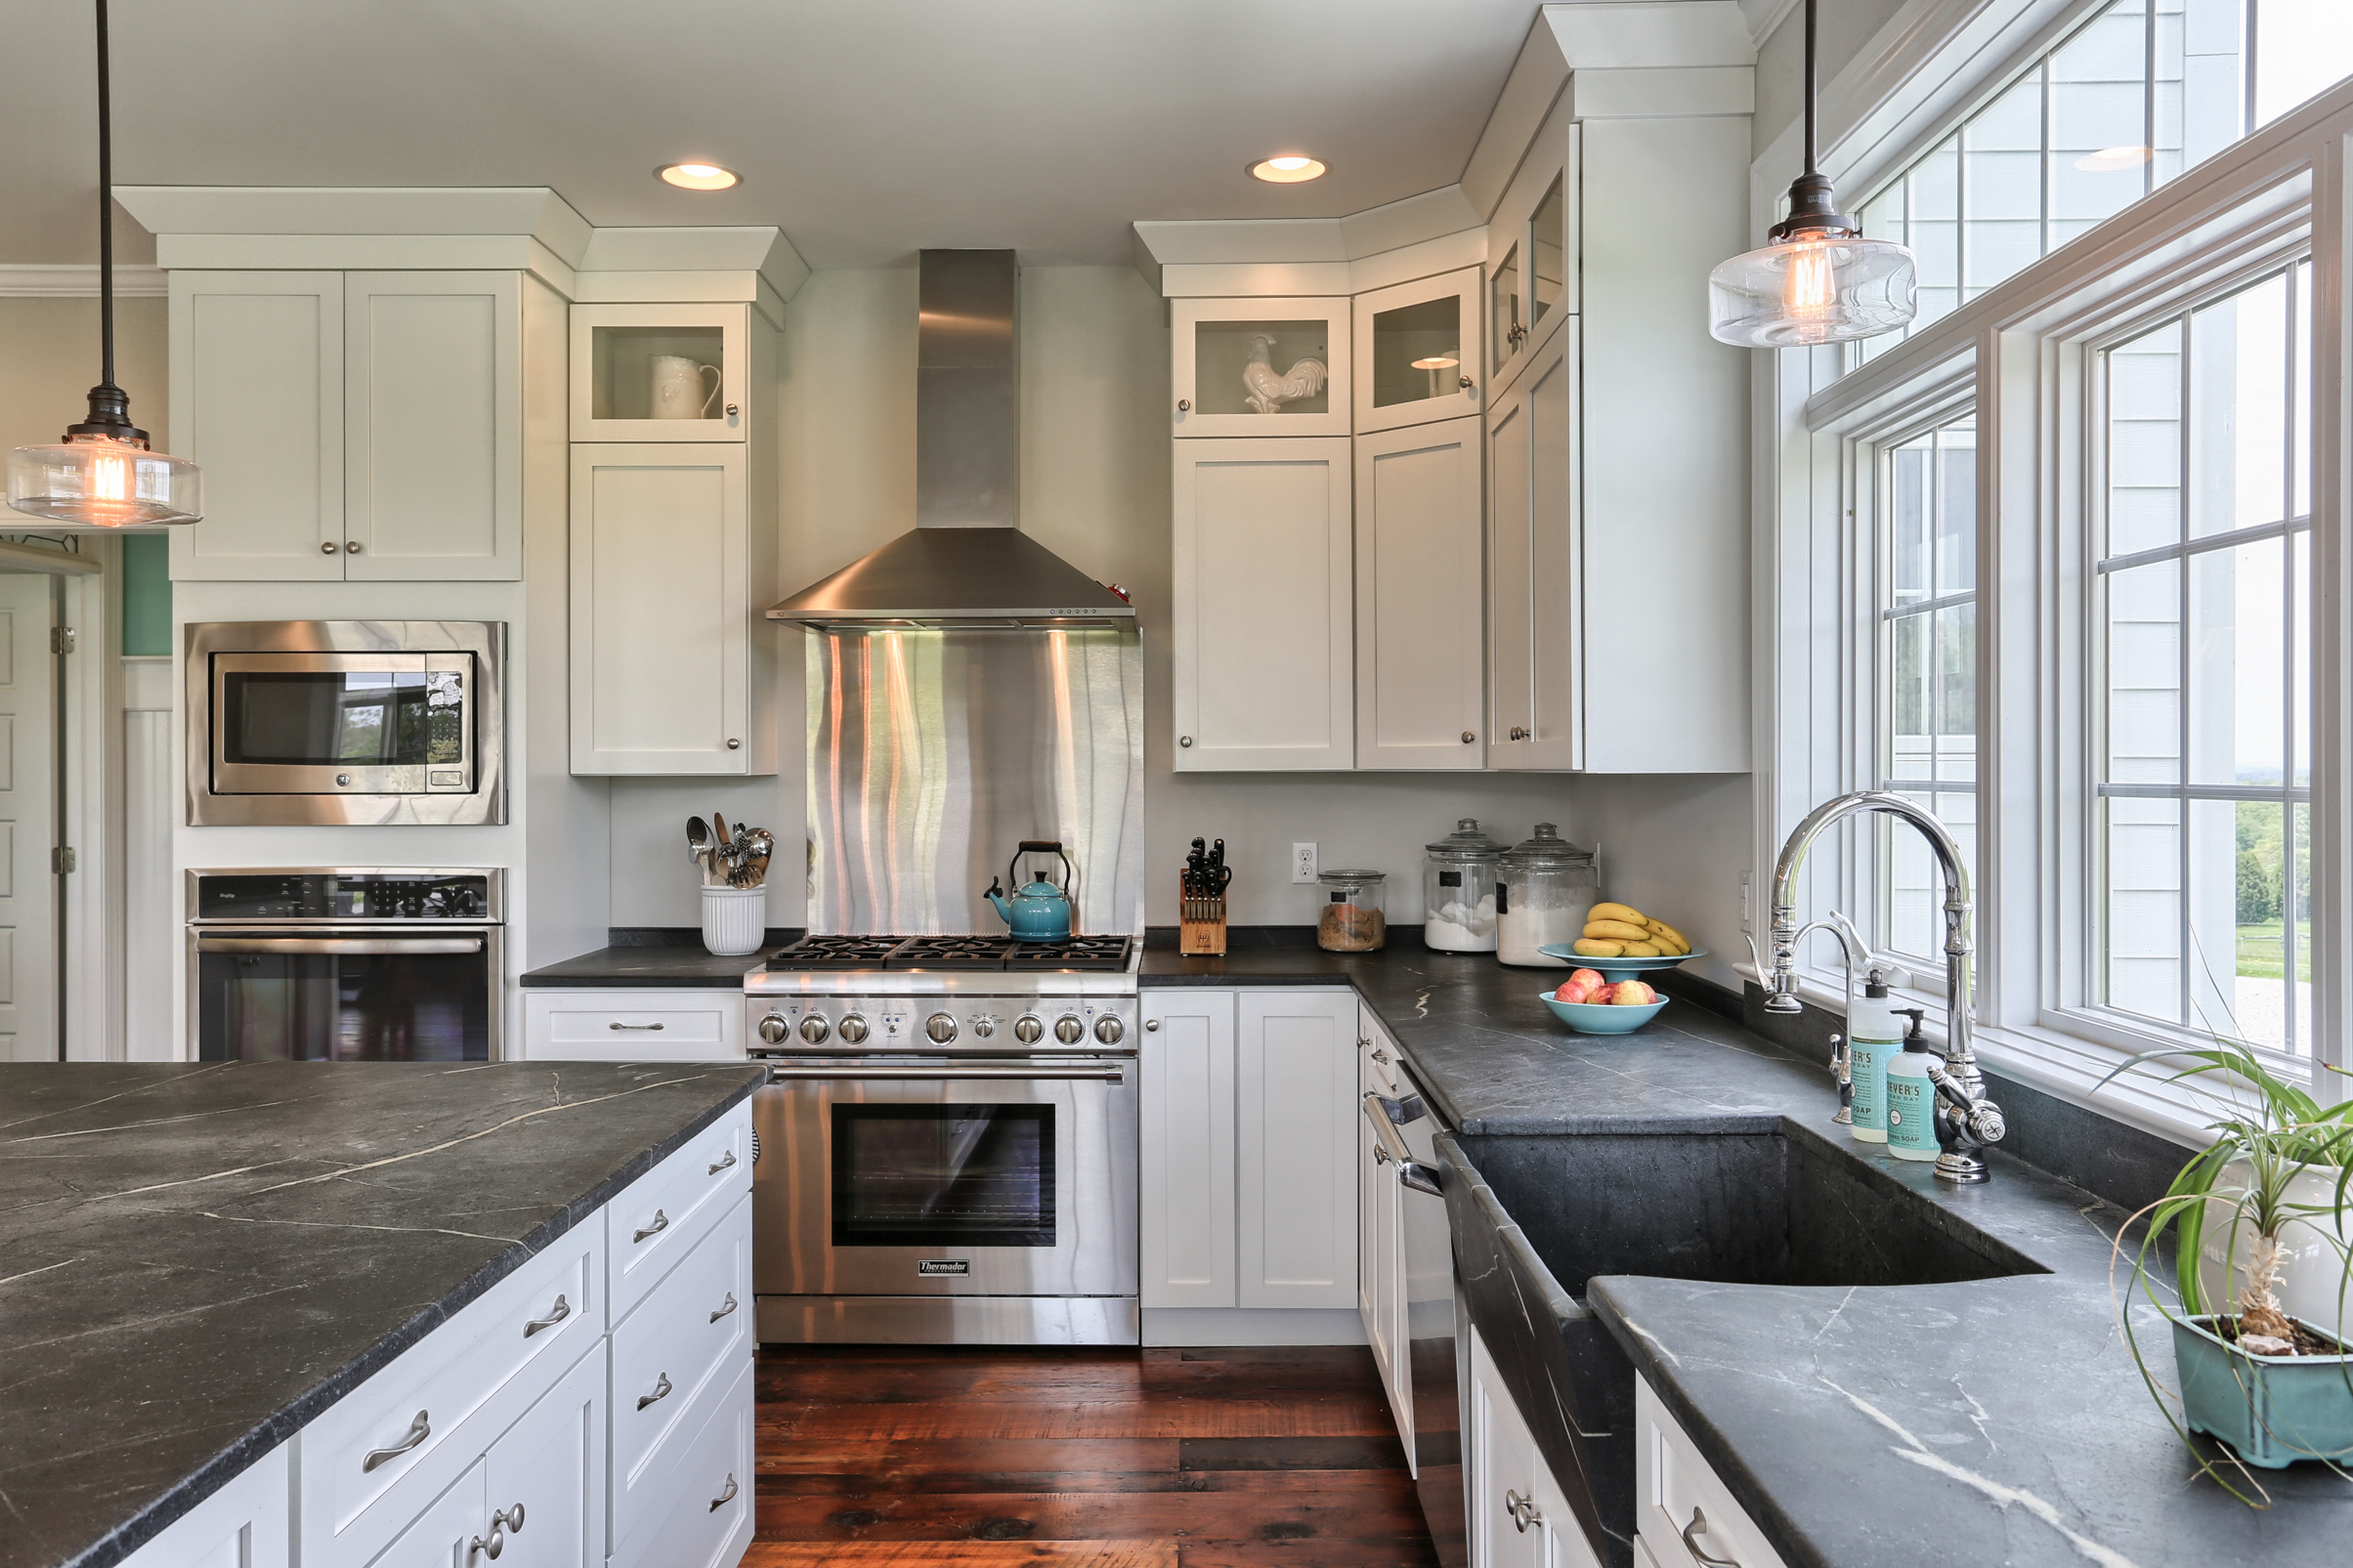 Project Spotlight: A Country Farmhouse Kitchen